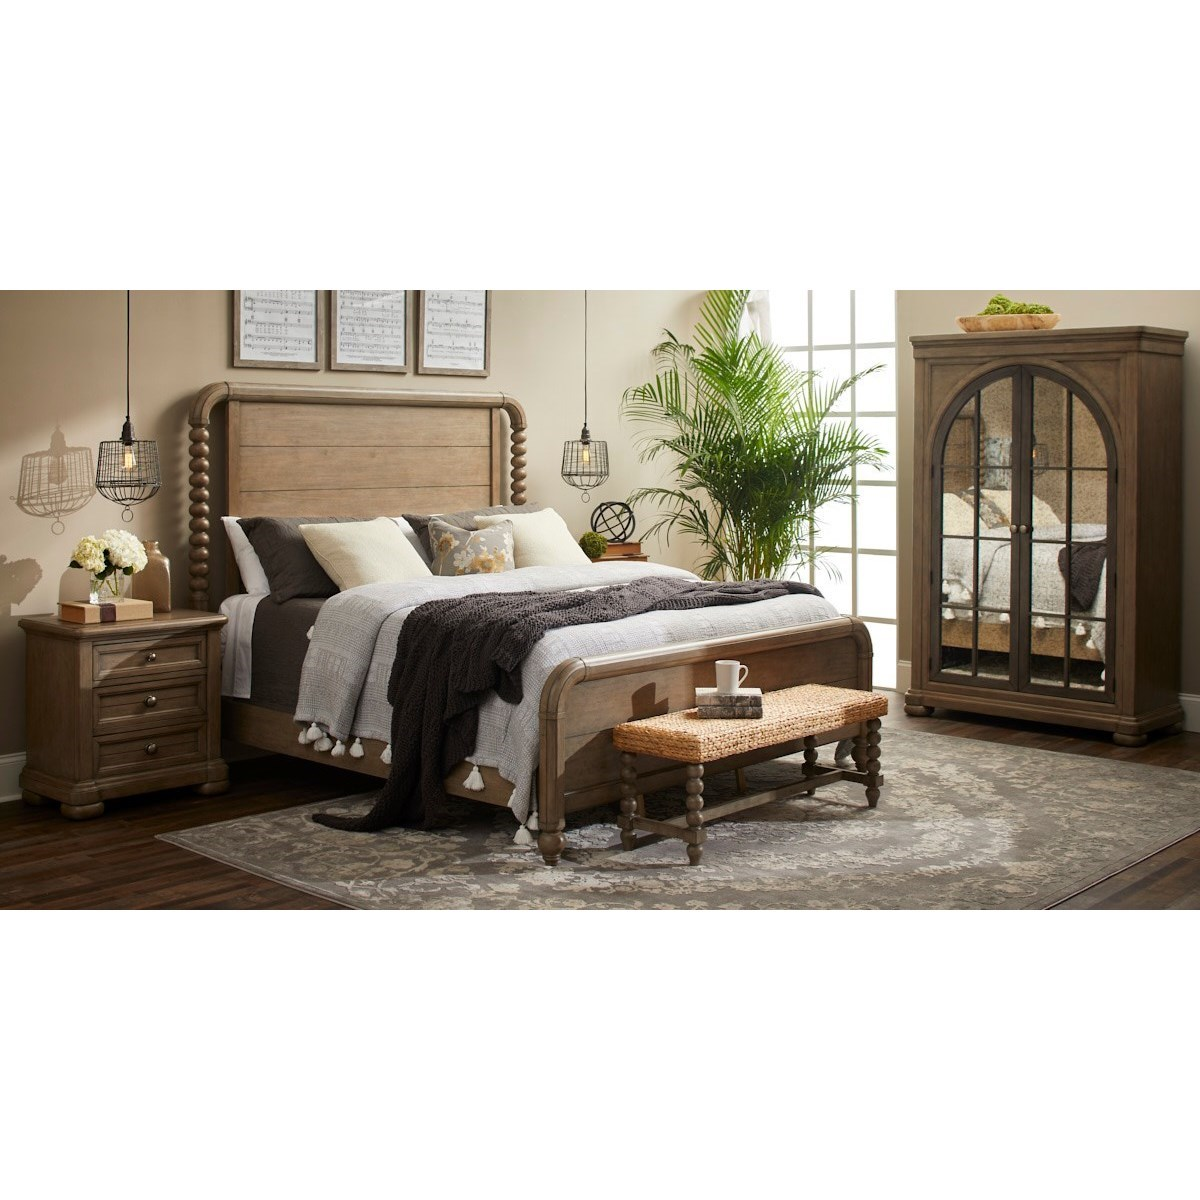 Nashville King Bedroom Group by Trisha Yearwood Home Collection by Klaussner at Powell's Furniture and Mattress